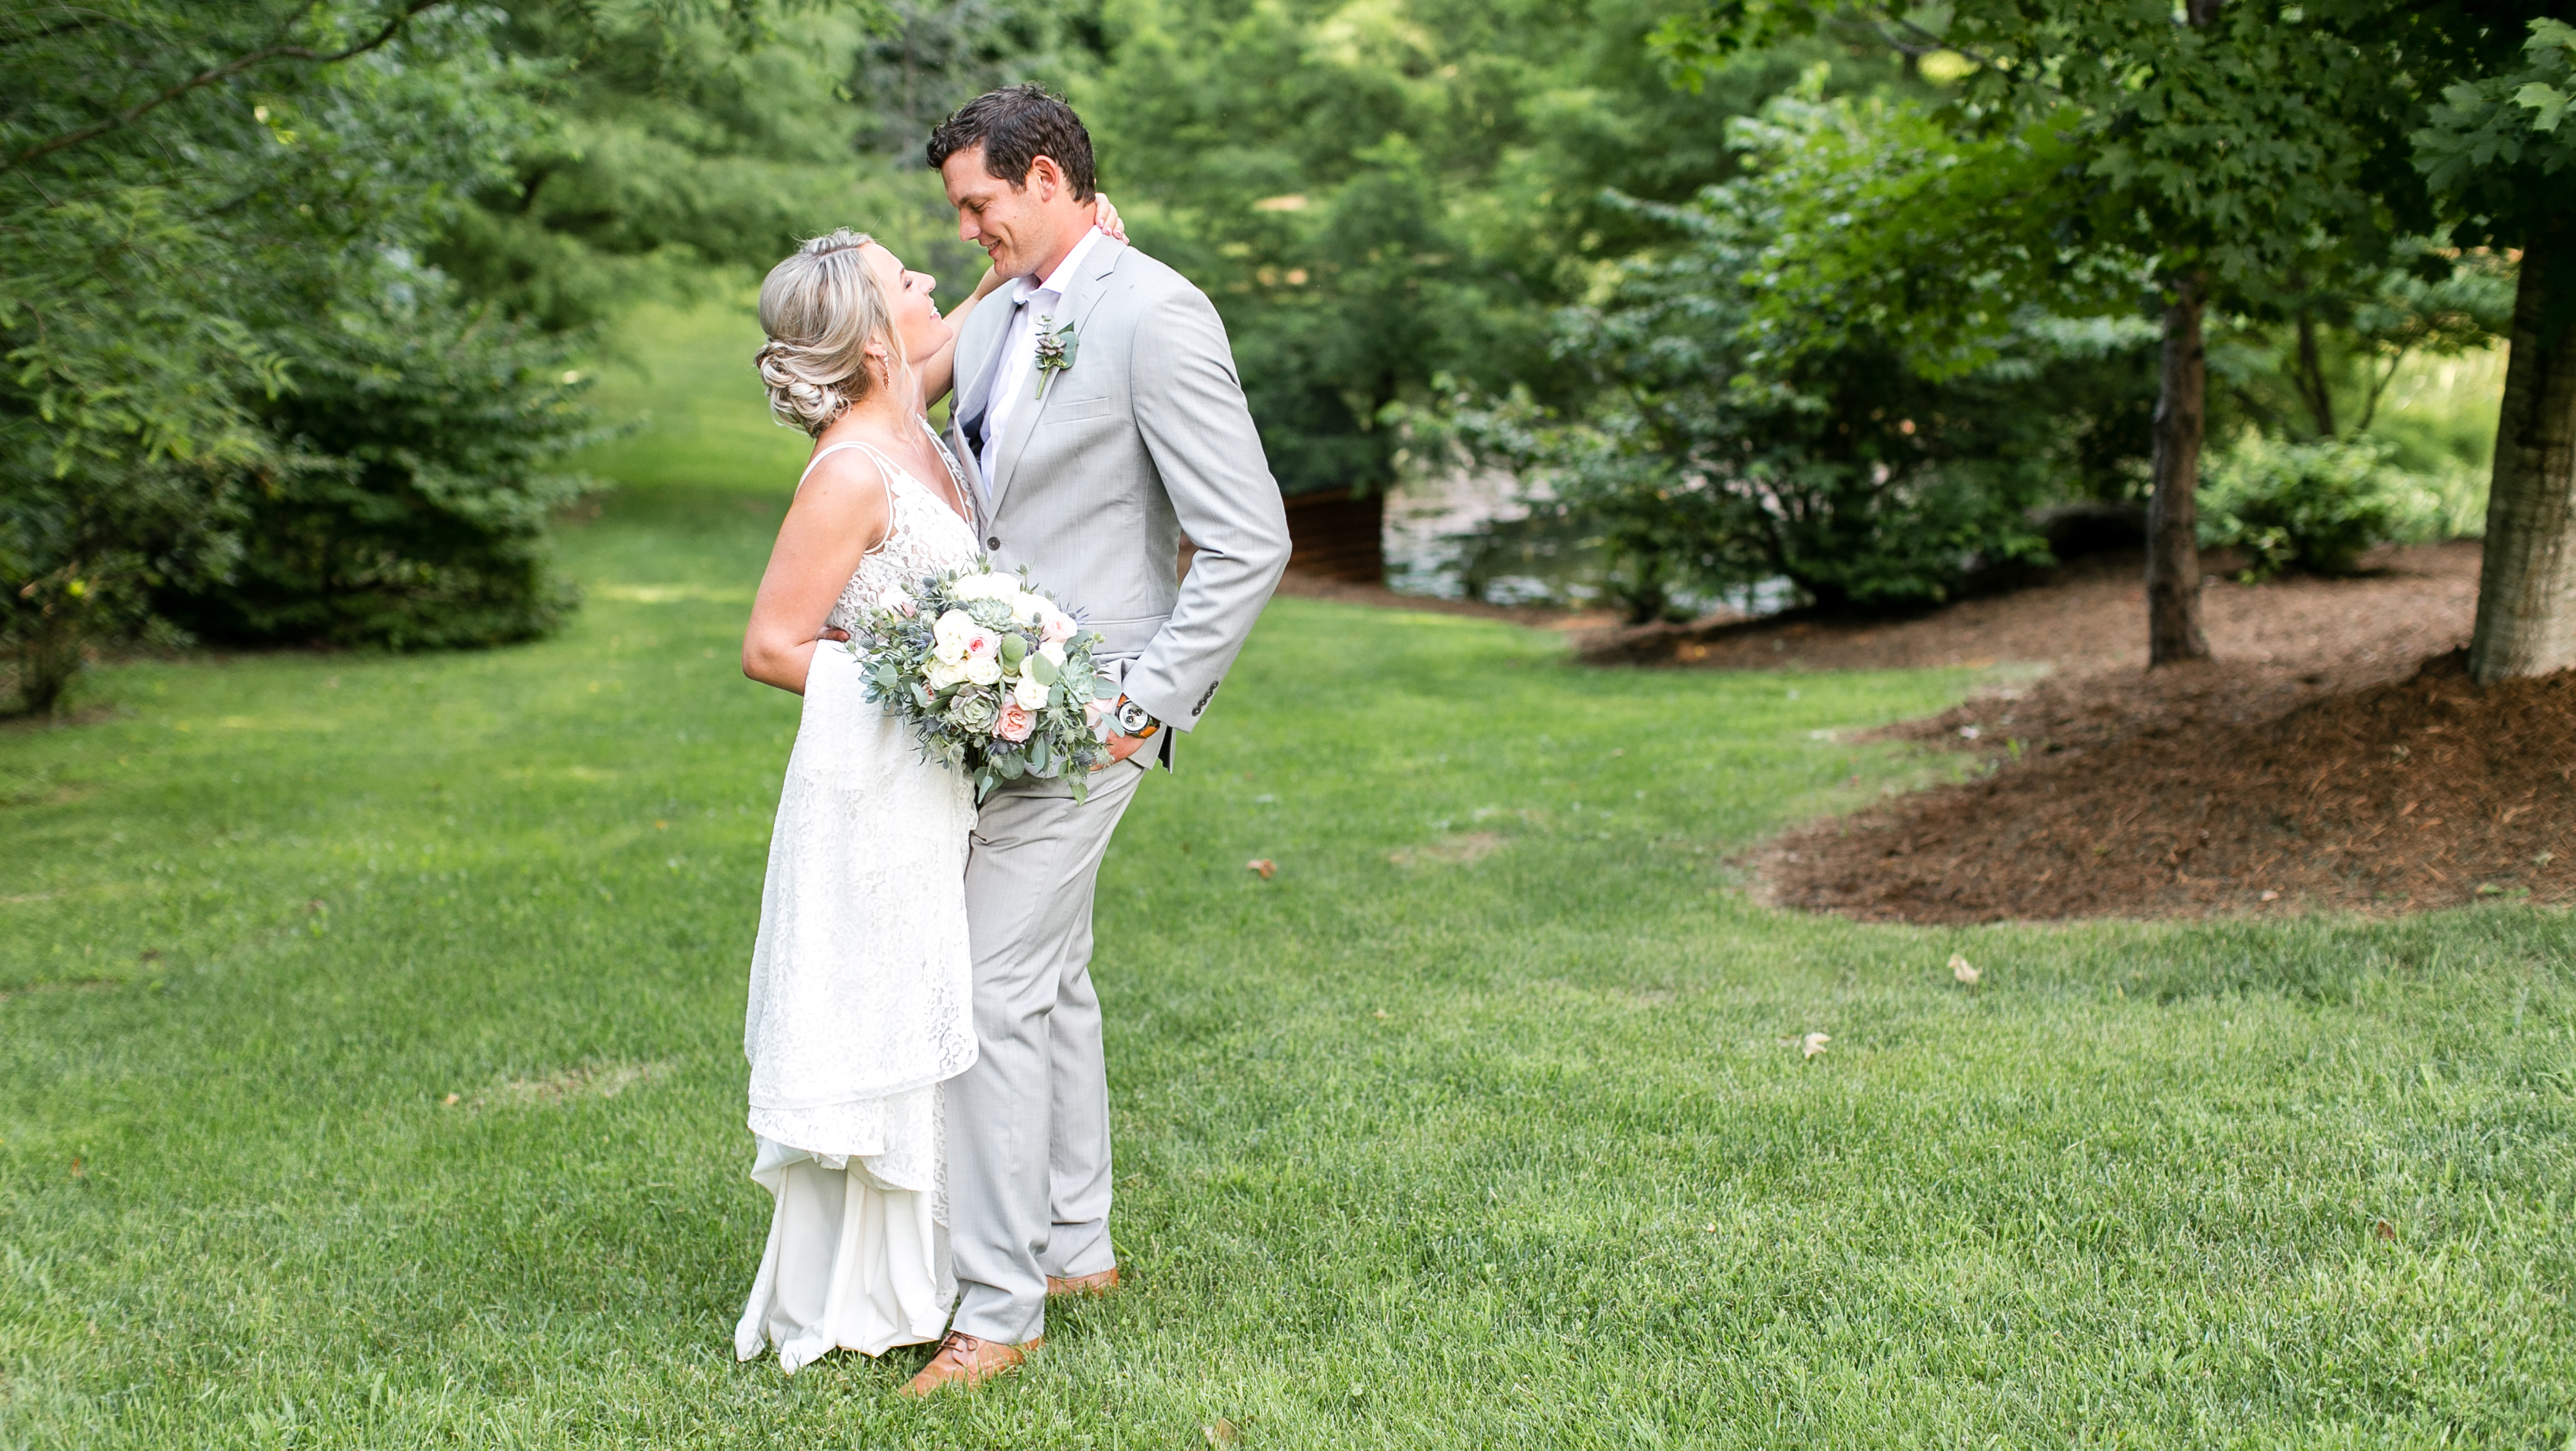 House_mountain_inn_wedding-bride_groom_lexington_wedding_photography